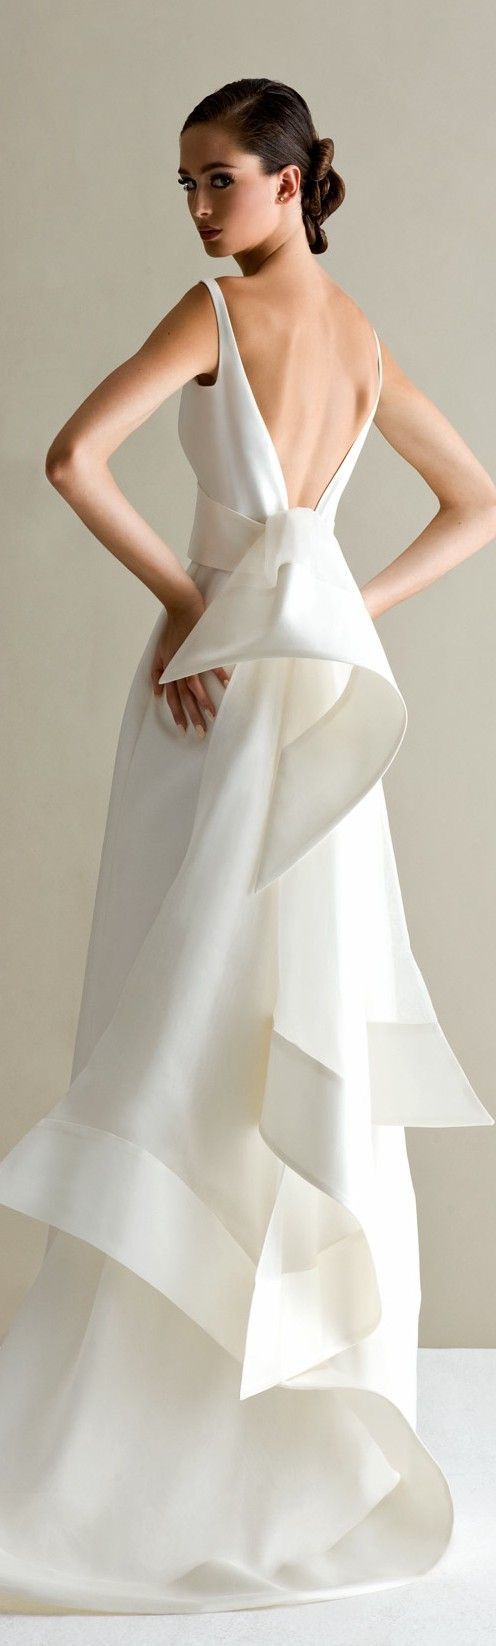 best images about casamento on pinterest vitoria boho and